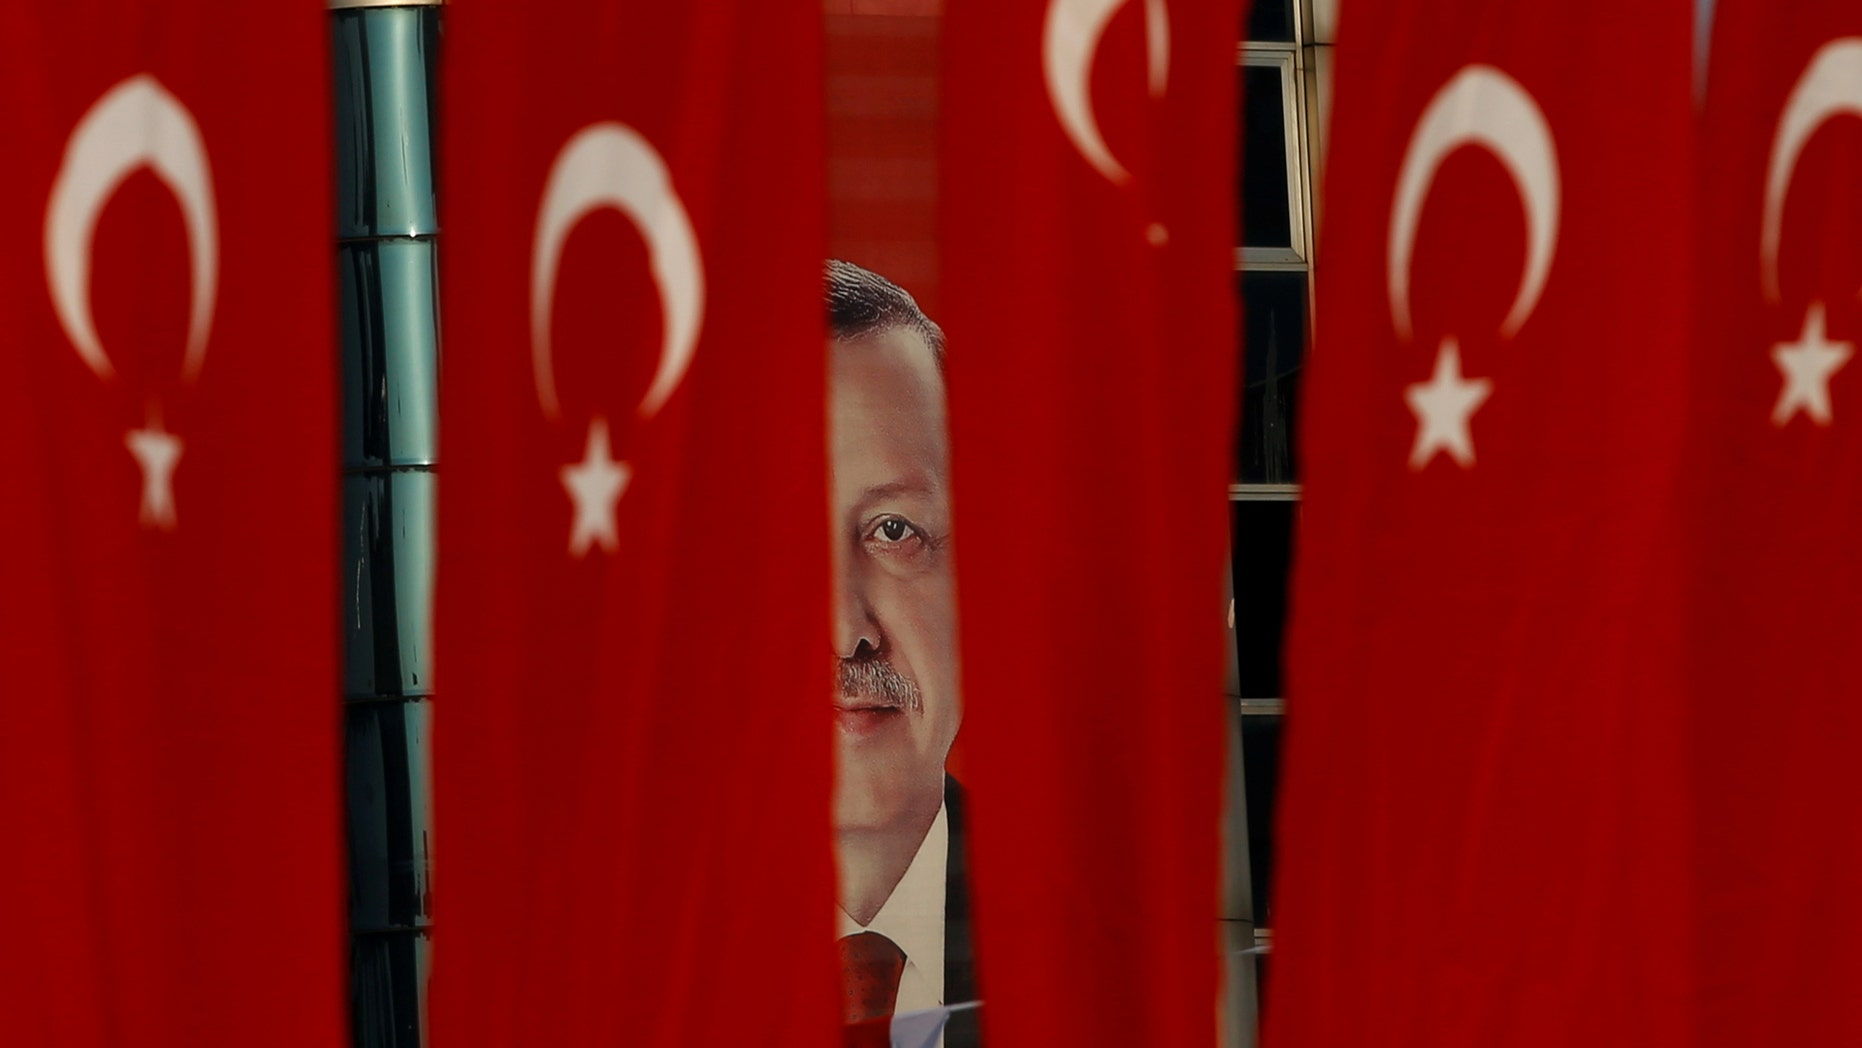 File photo - A picture of Turkish President Tayyip Erdogan is seen through Turkish national flags ahead of the constitutional referendum in Istanbul, Turkey, April 14, 2017. (REUTERS/Alkis Konstantinidis)